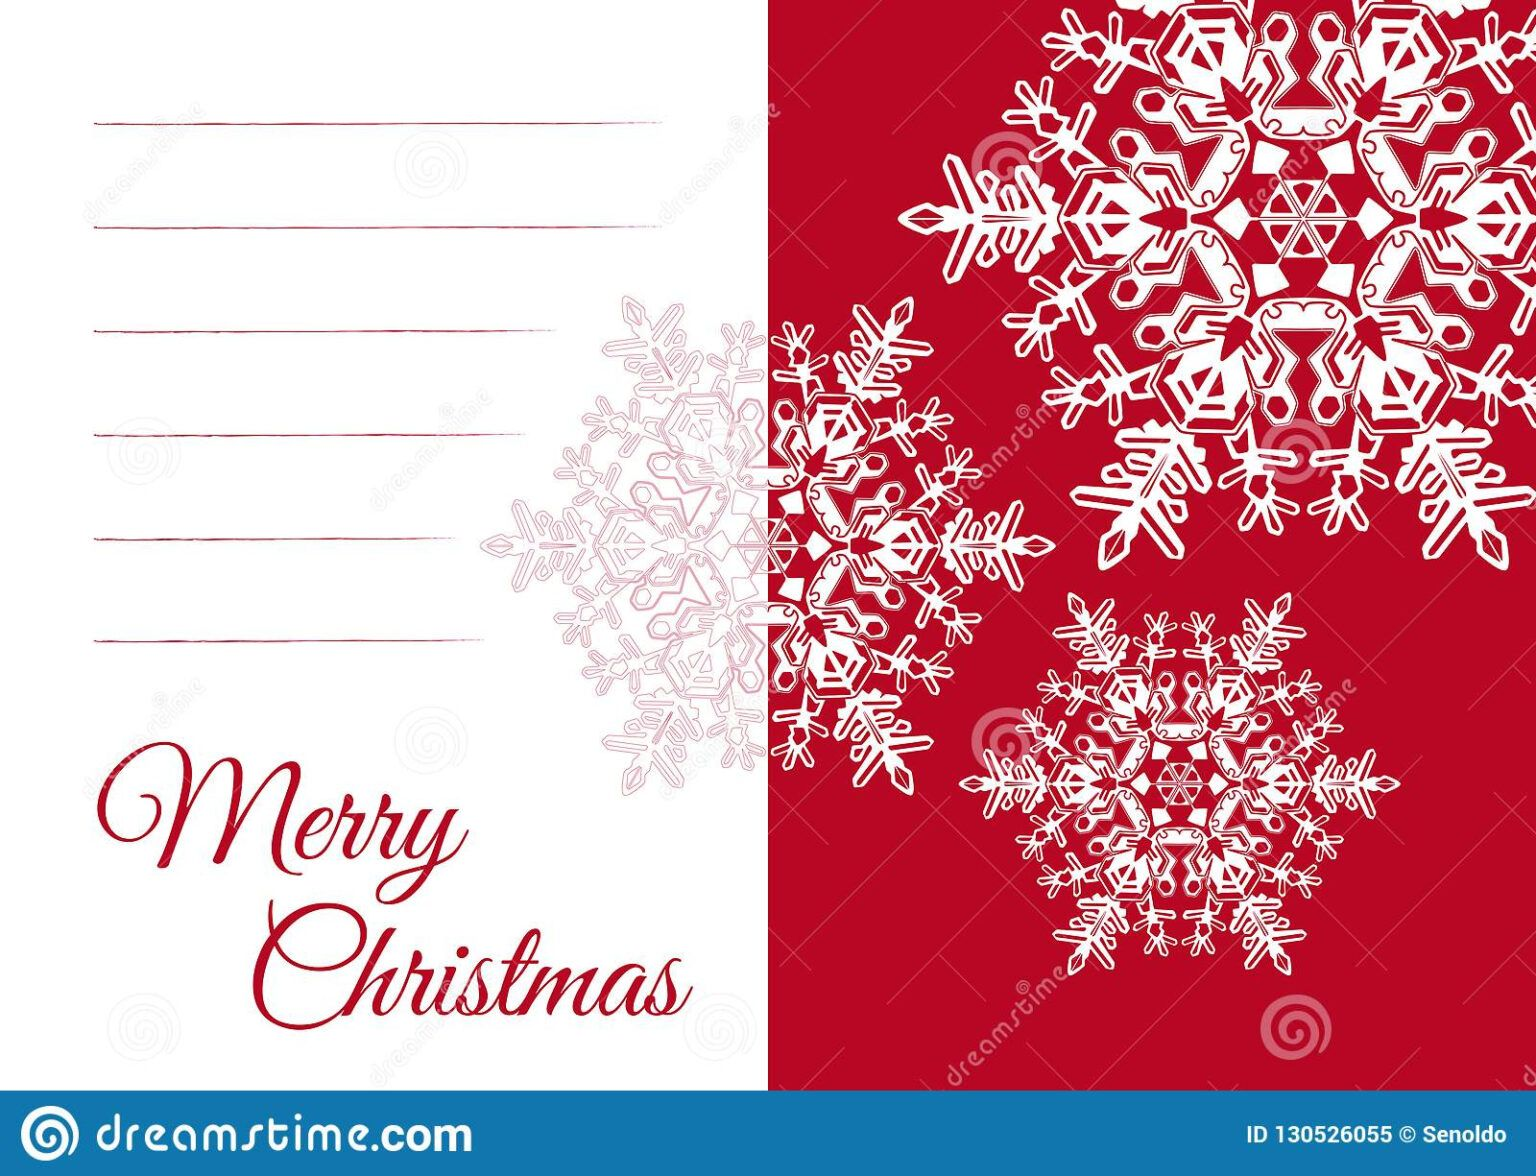 Christmas Greeting Card Template With Blank Text Field Stock With Regard Christmas Card Template Christmas Card Templates Free Christmas Greeting Card Template